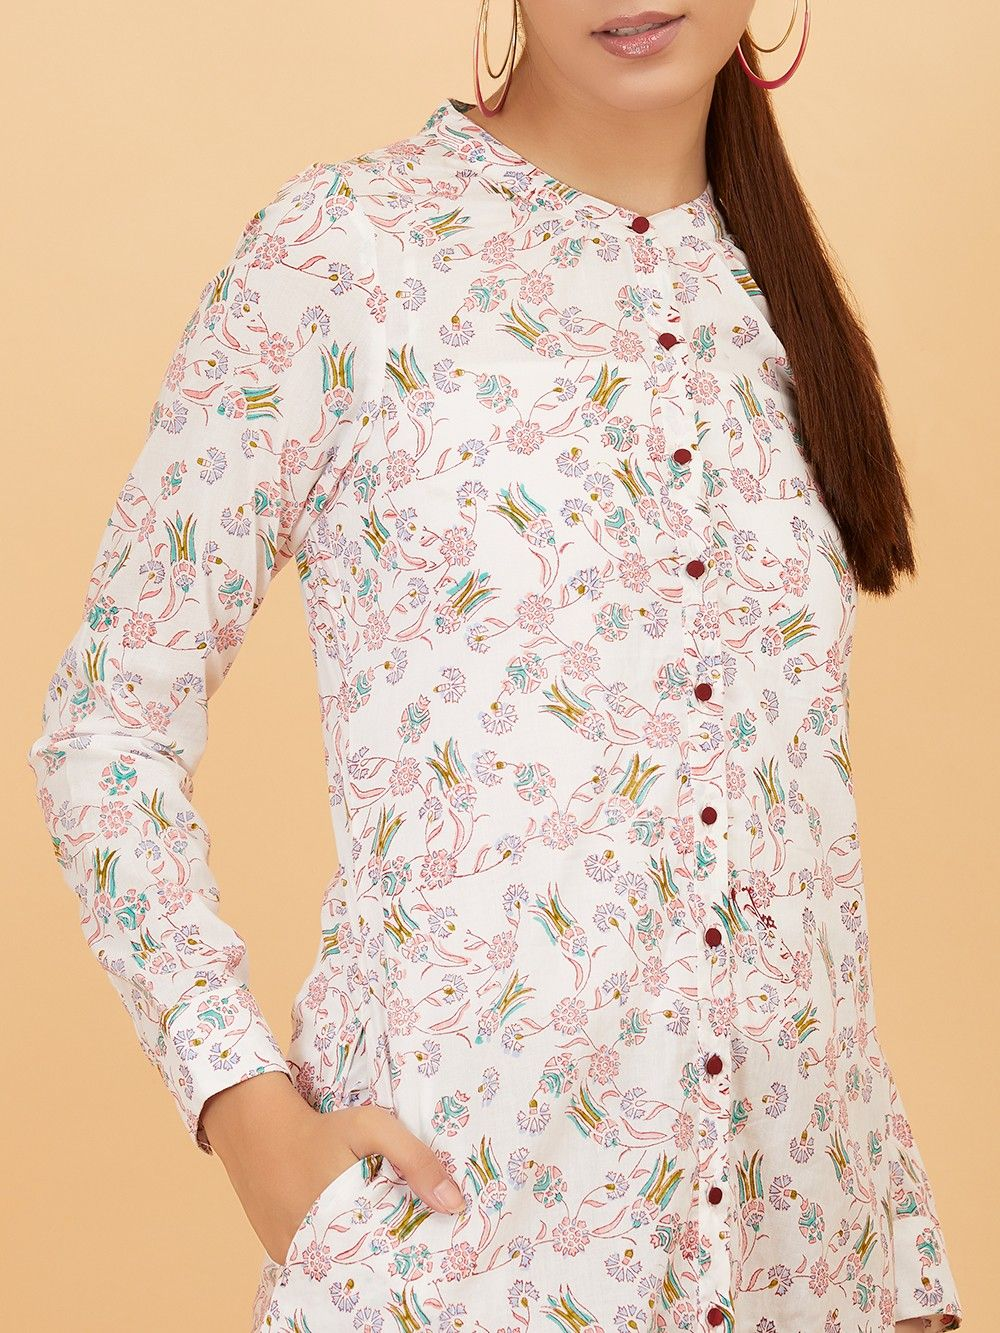 a962c66e8ced6 Buy White Floral Hand Block Printed Cotton Dress online at Theloom